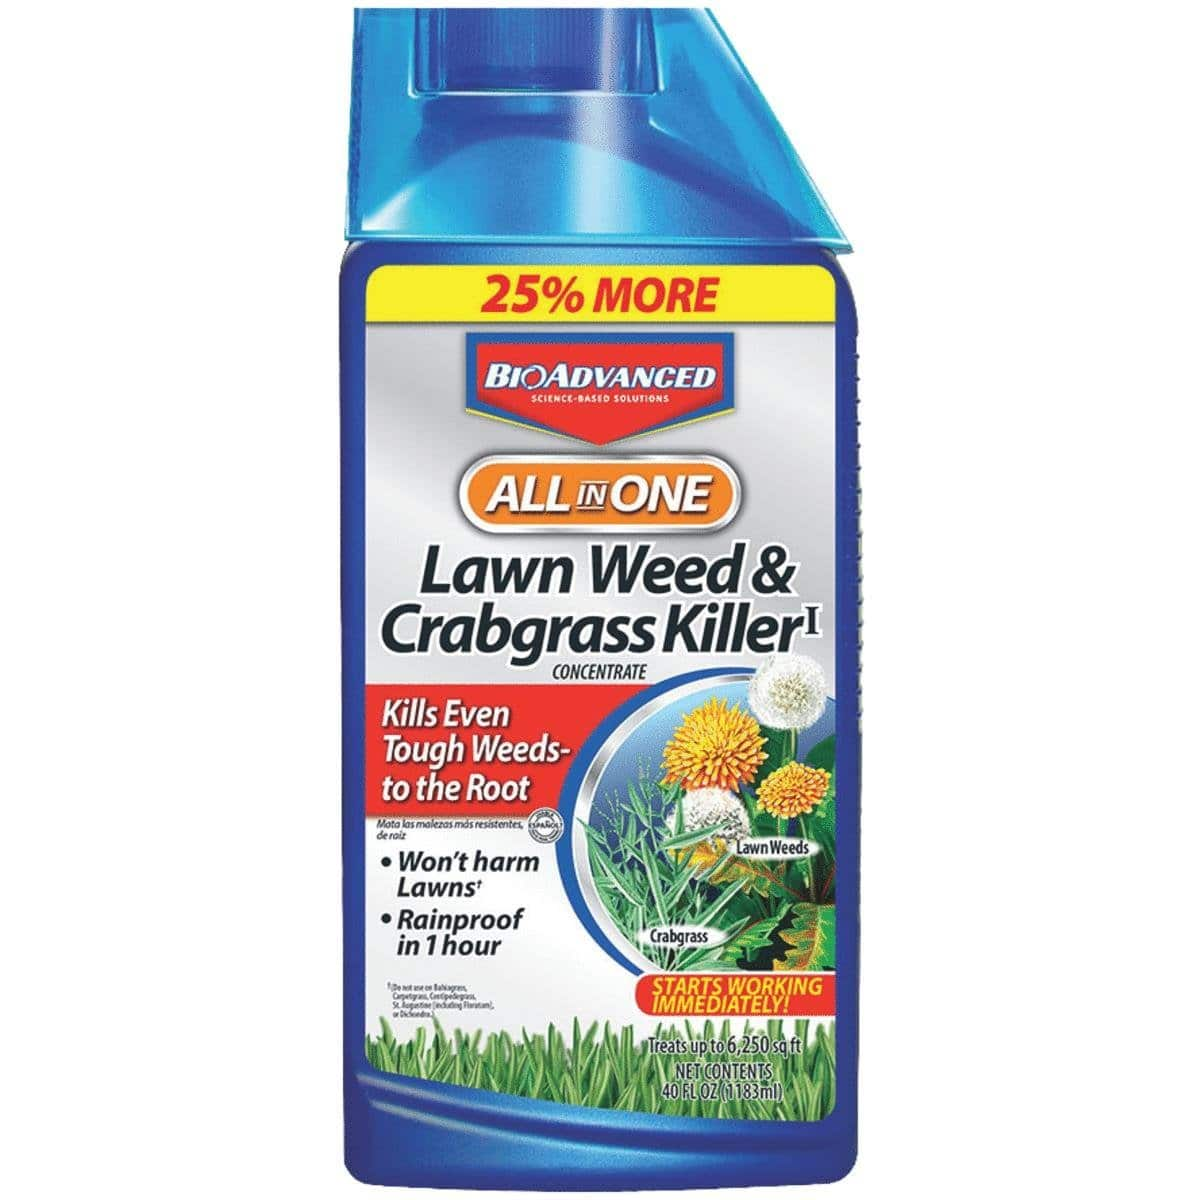 BioAdvanced All-in-One Lawn Weed & Crabgrass Killer 40 oz Concentrate for Dandelions, Crabgrass & Clover 50% off + Rebate $2